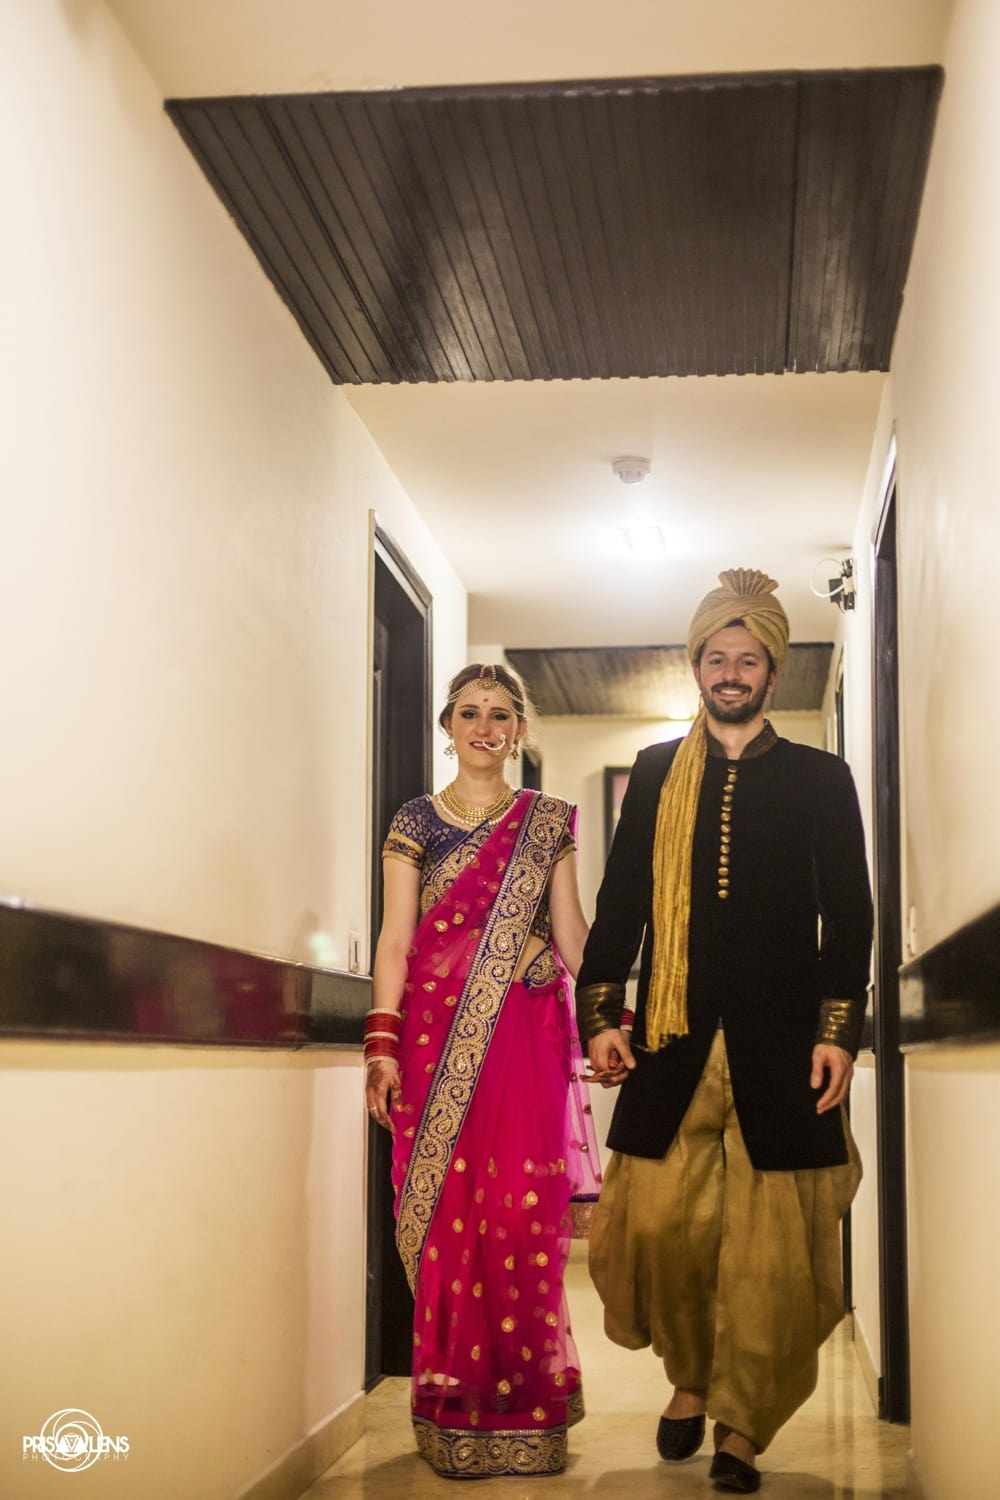 groom entry:sajda wedding planning and choreography services